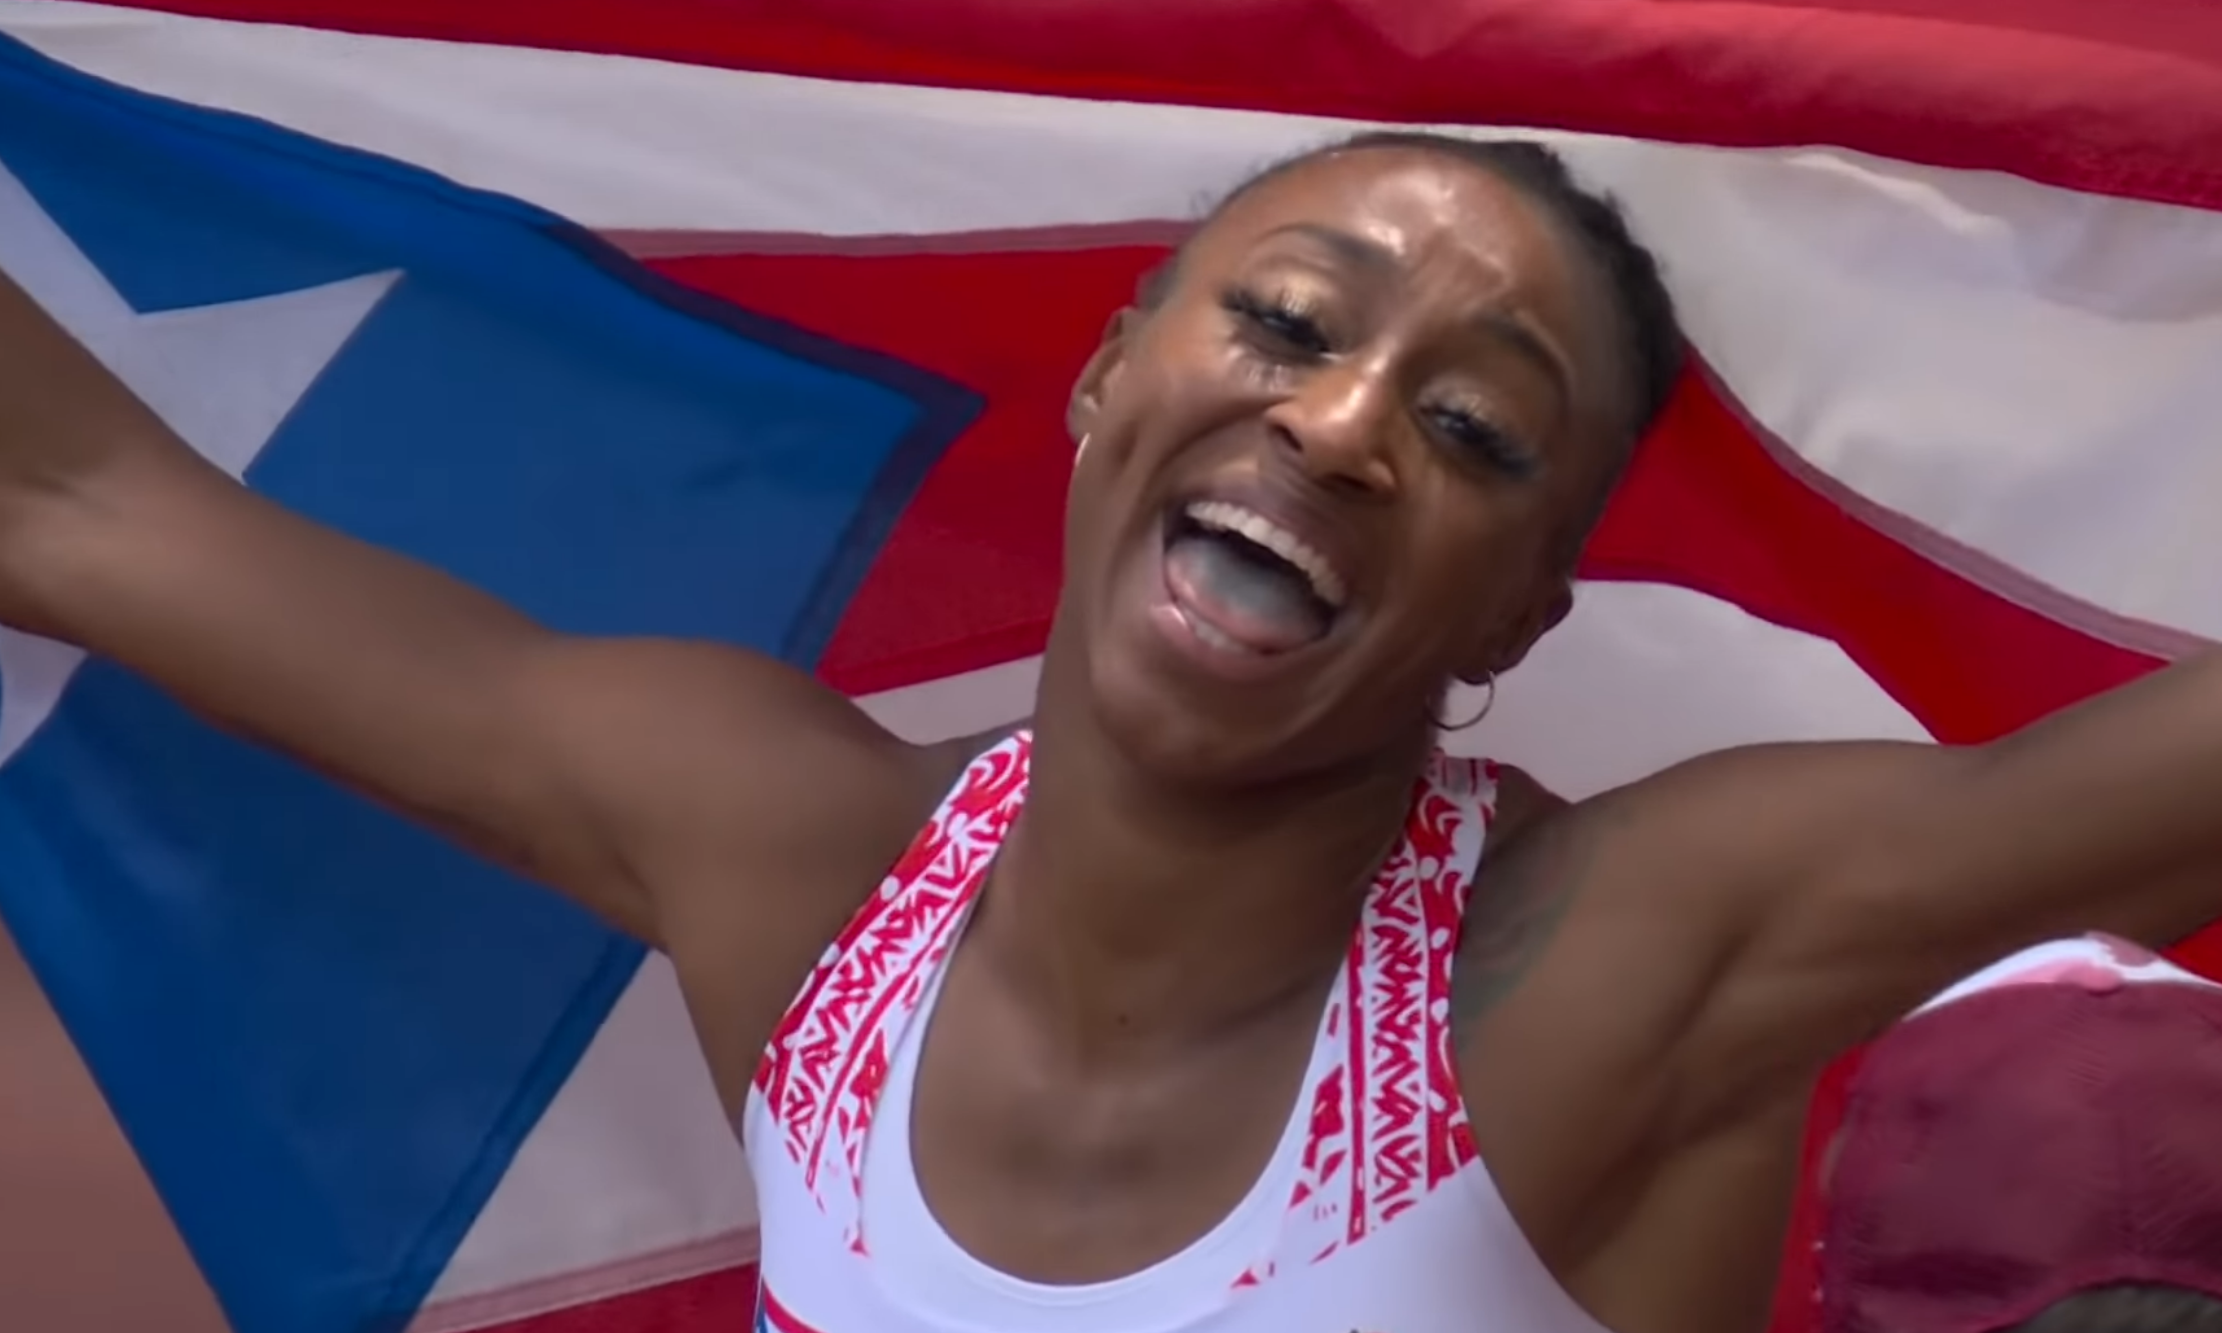 Jasmine Camacho-Quinn proudly displays the Puerto Rican flag after winning a gold medal in the Tokyo 2020 Olympics (held in 2021). Screenshot from video.